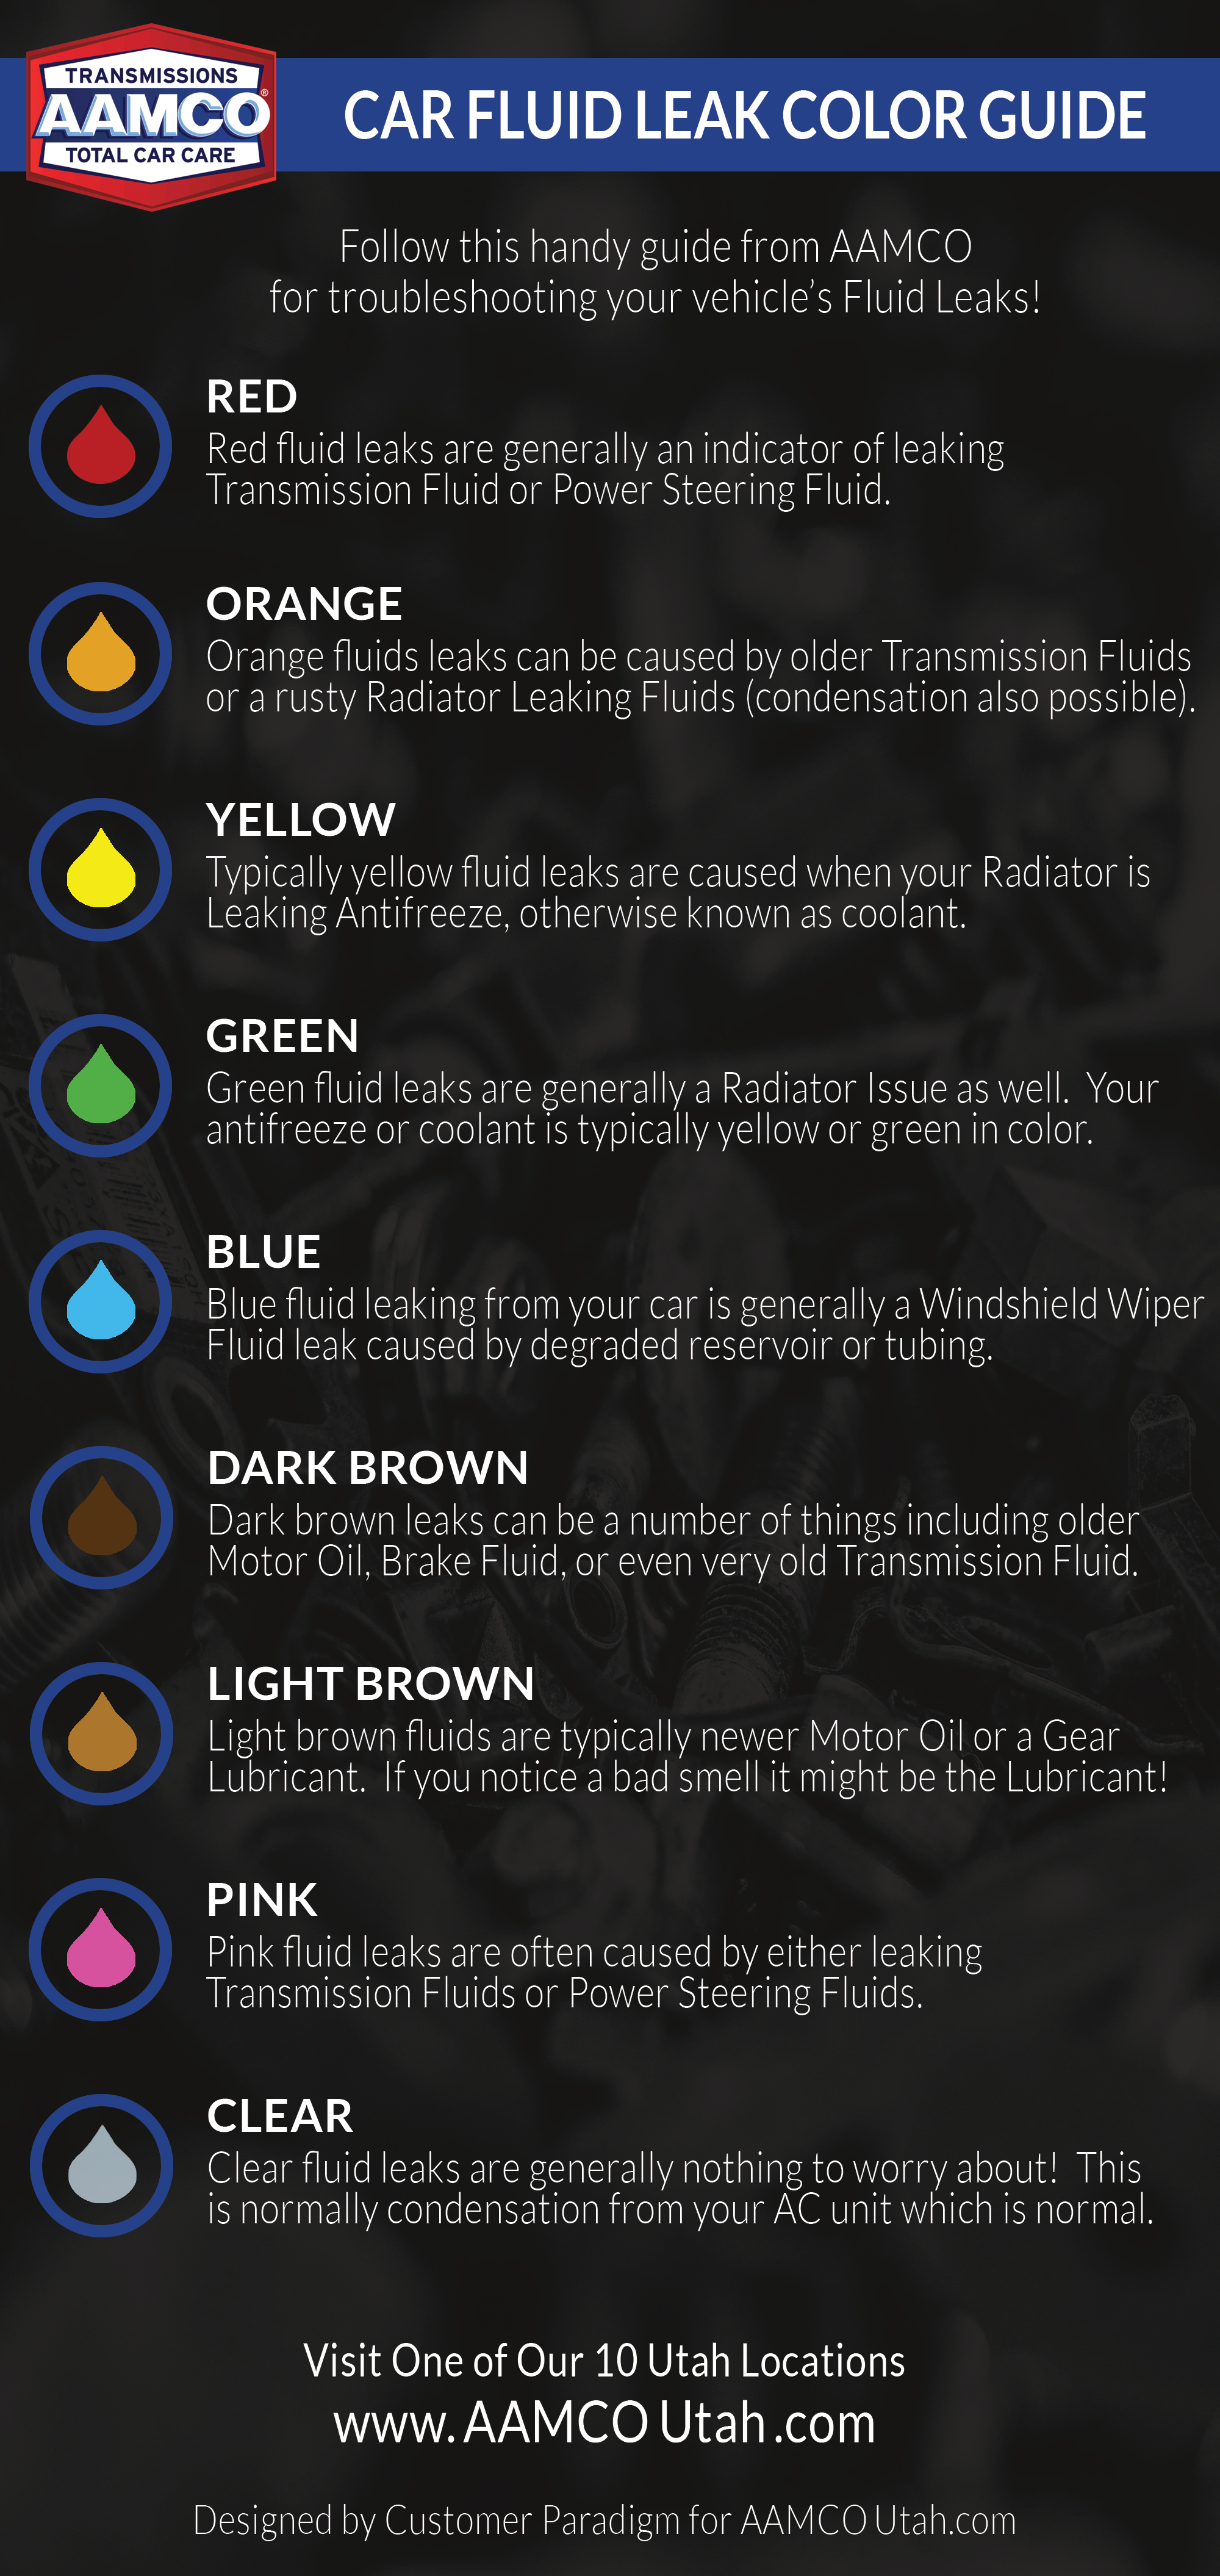 Image Of Aamco Utah Infographic On Car Liquid Leak Spill Color Guide